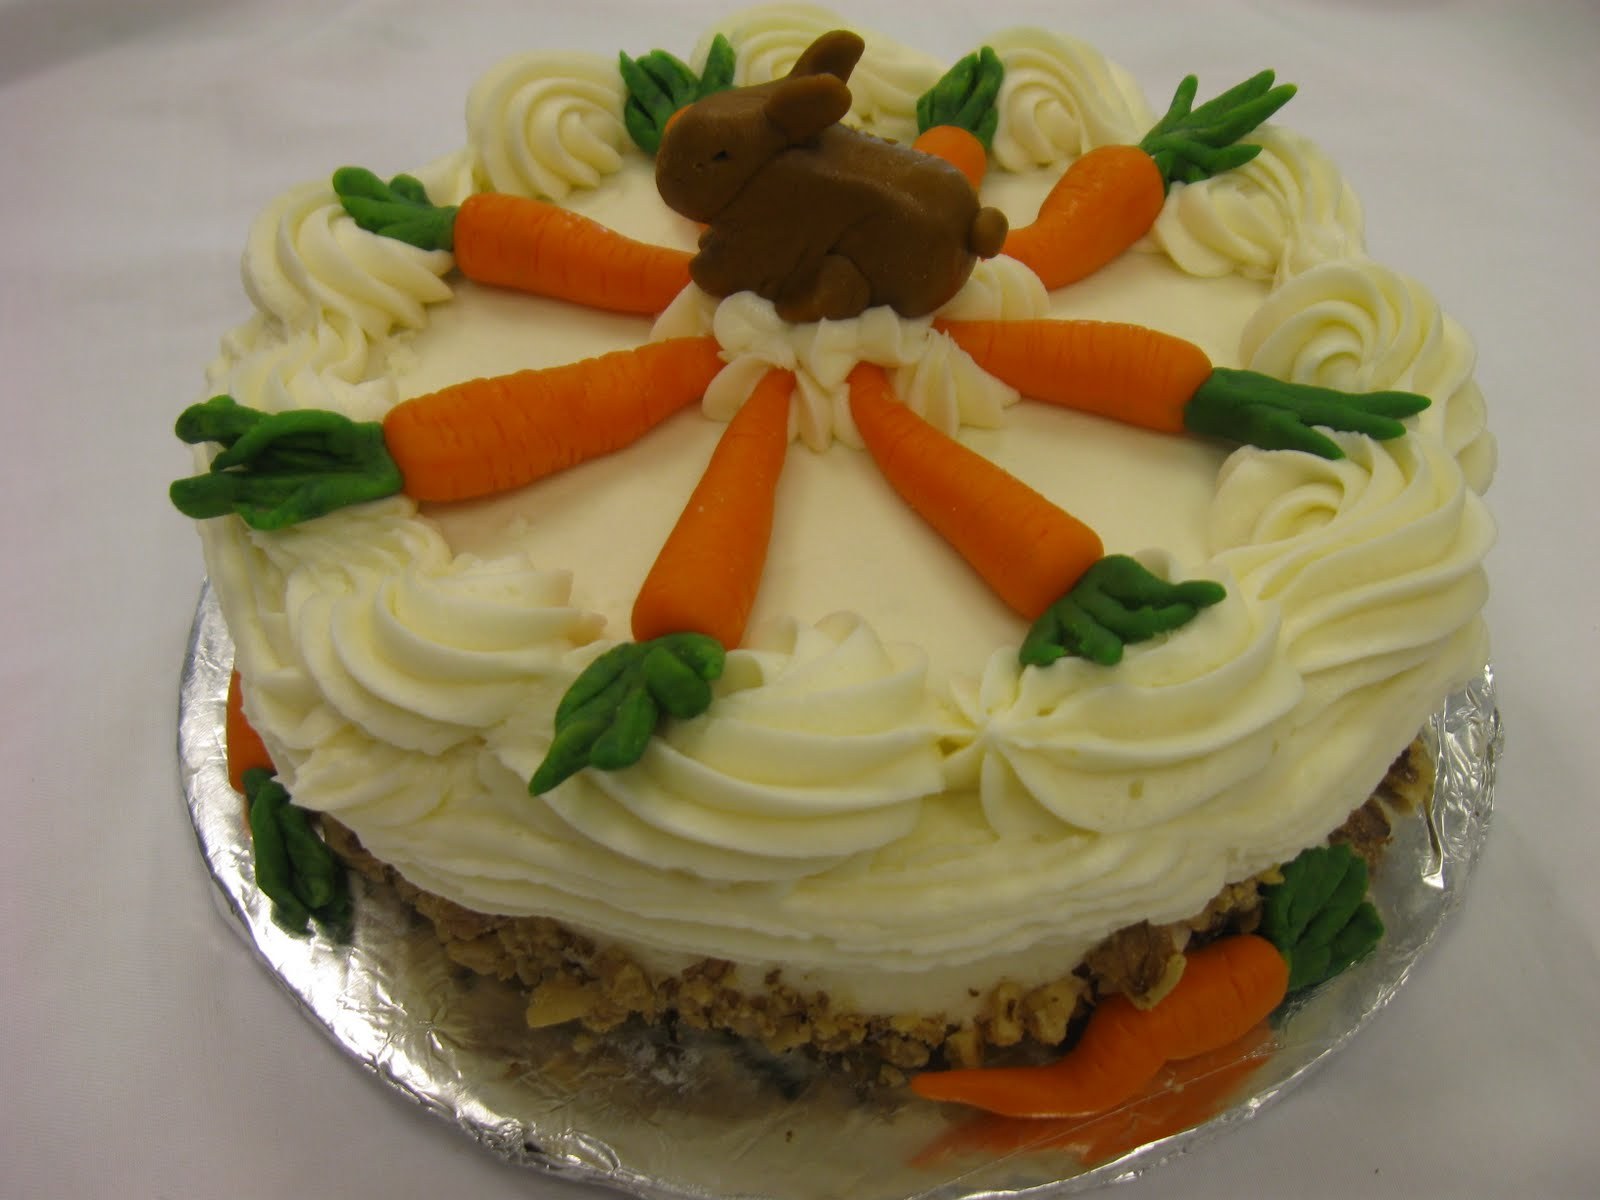 ... marzipan carrots are a clue) - carrot cake with cream cheese frosting